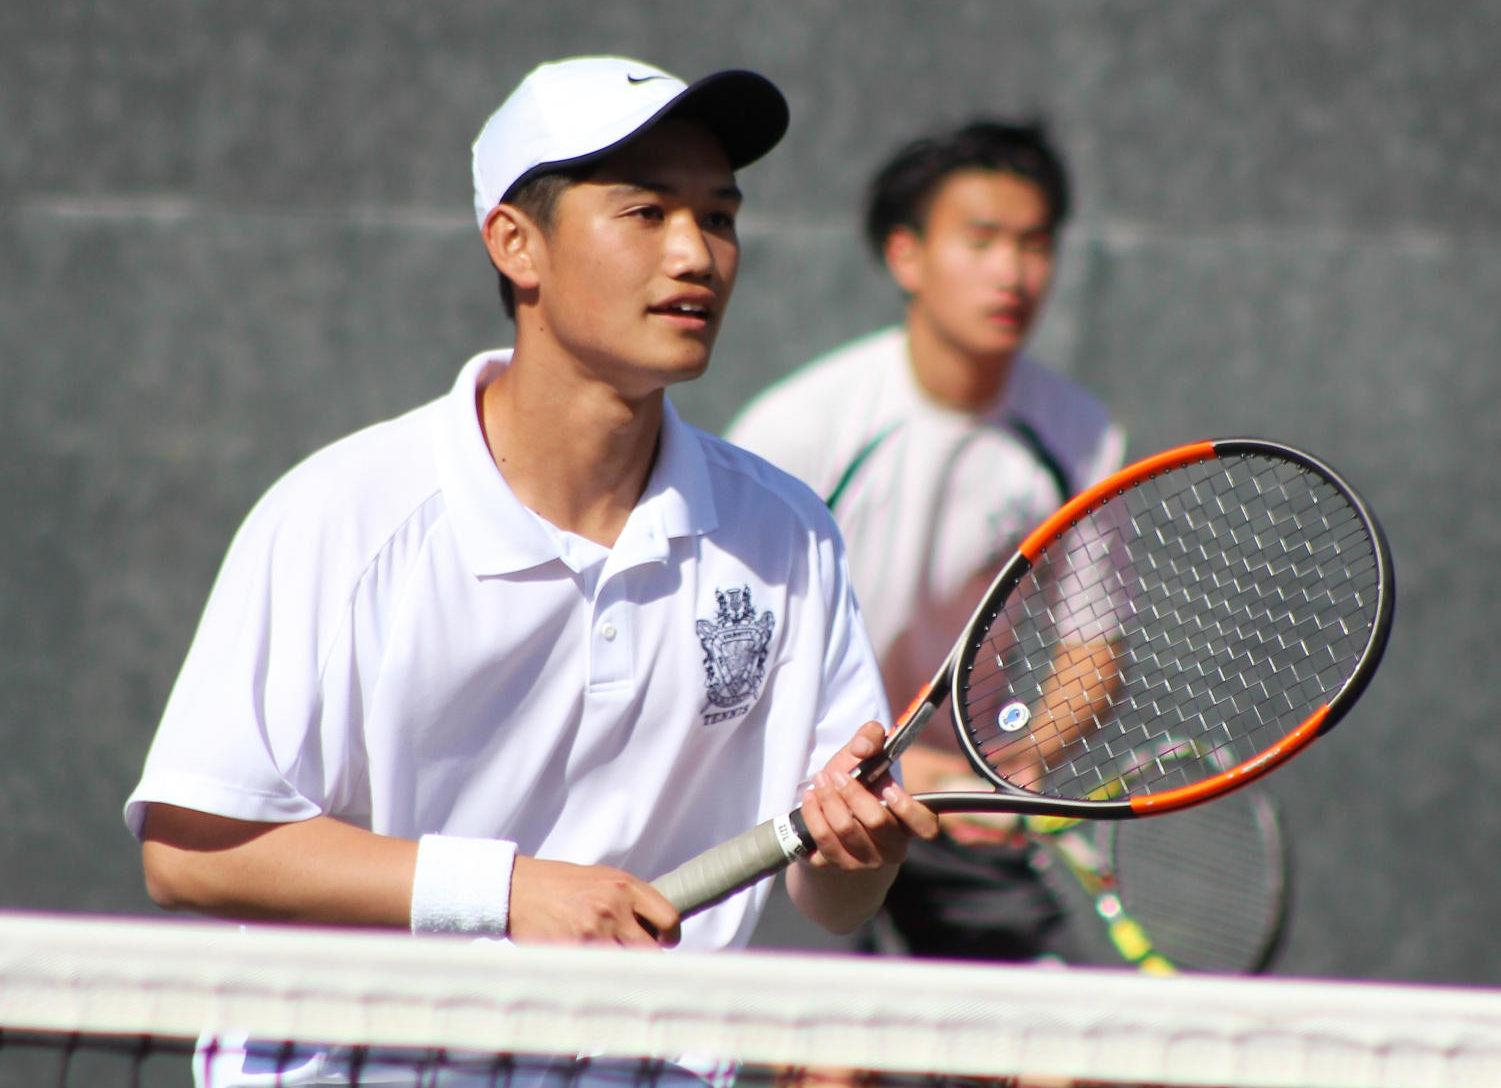 Carlmont junior Jerry Liu waits to receive a serve with his partner, senior captain Kevin Xiang.